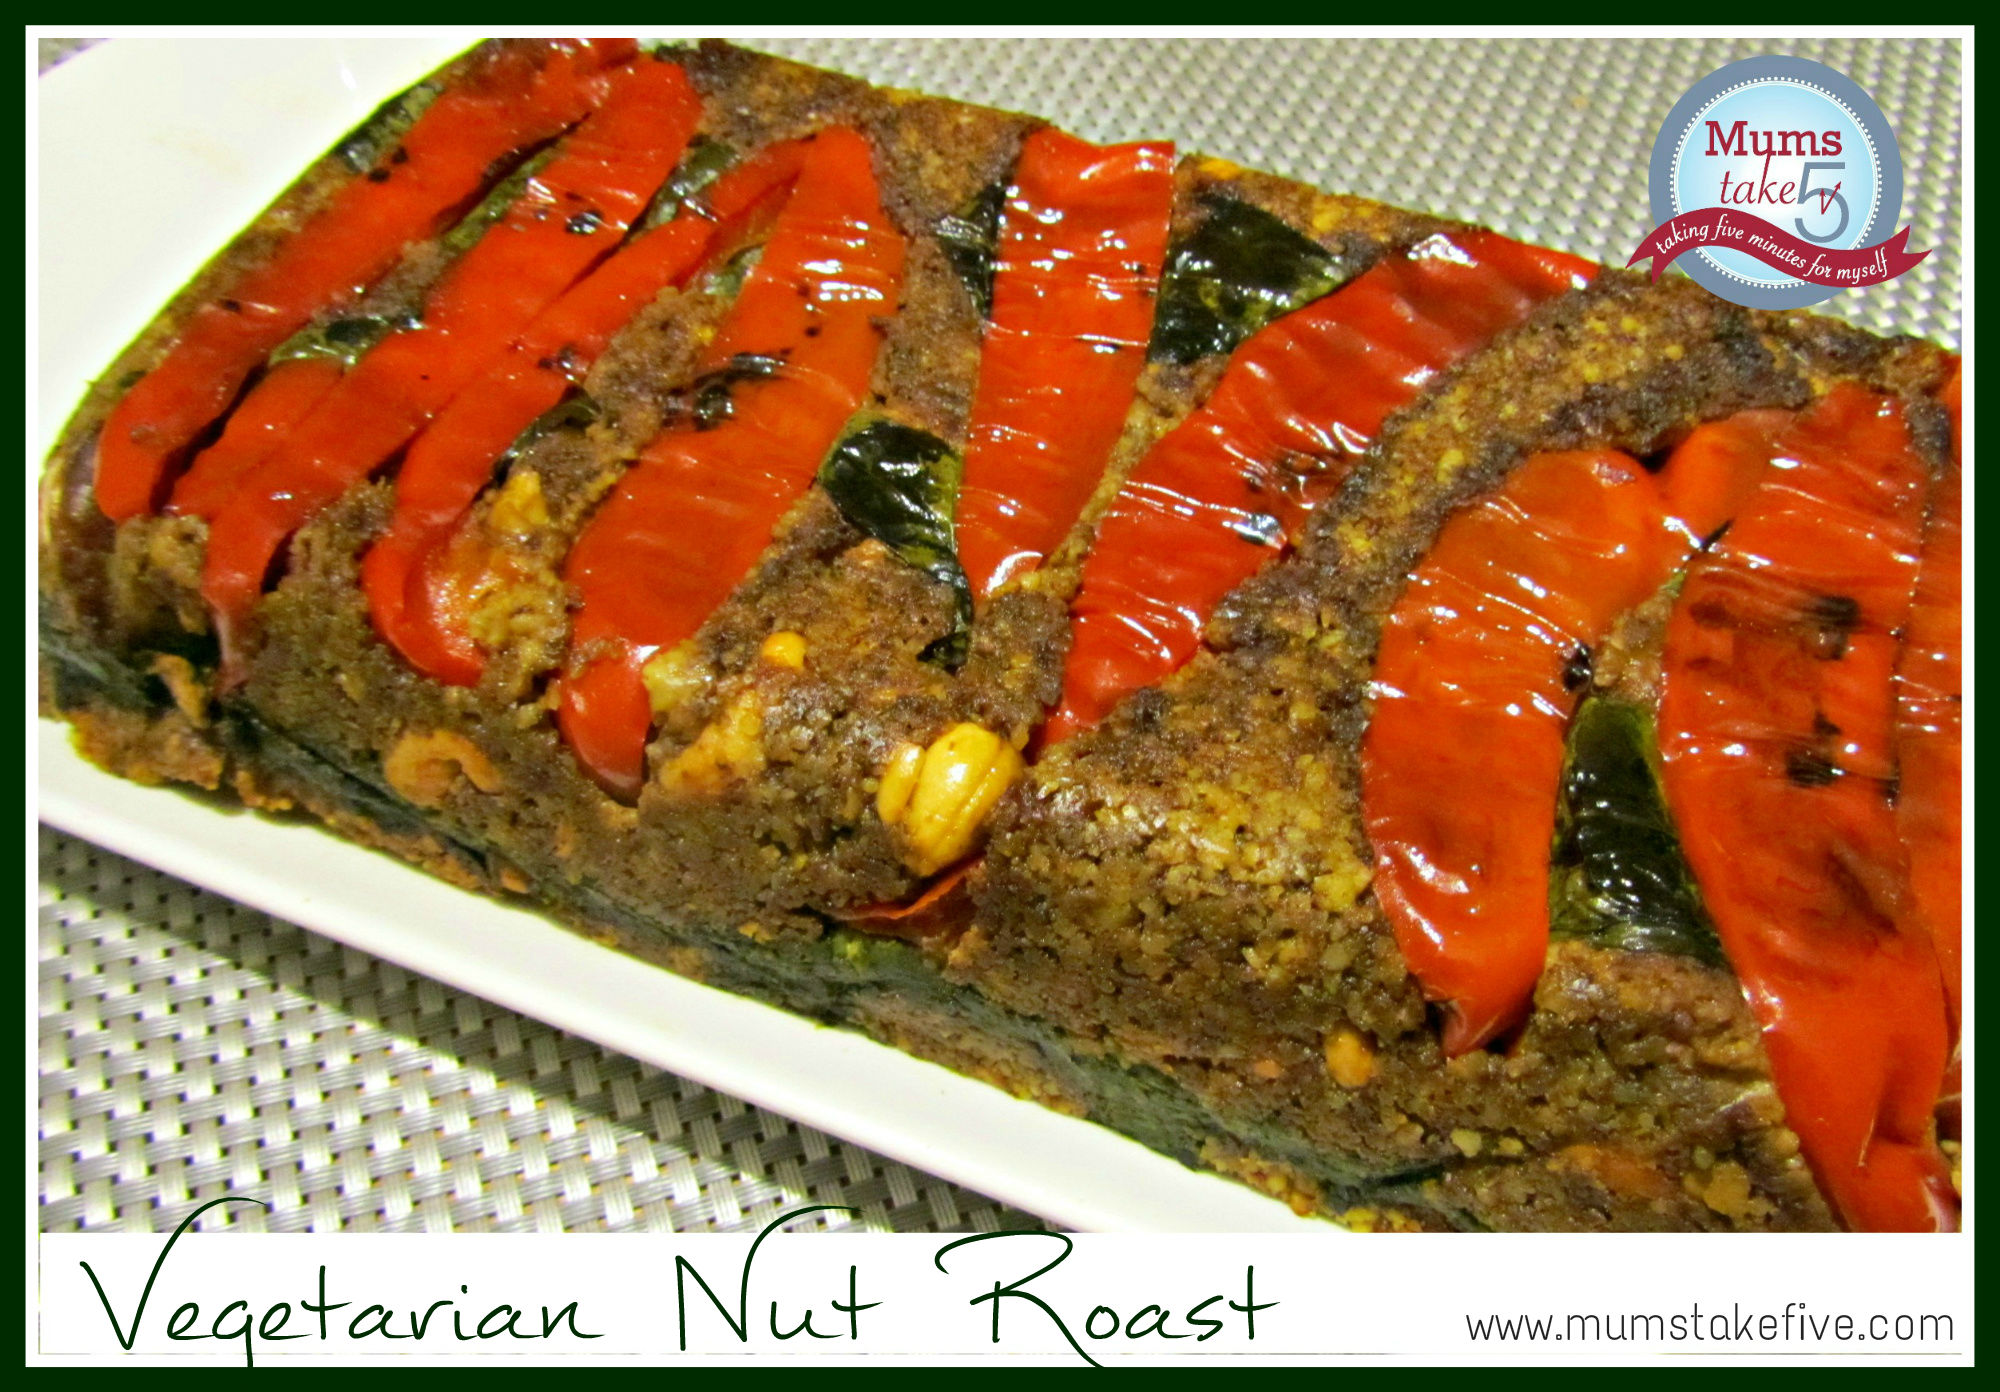 Vegetarian Nut Roast Loaf Paleo